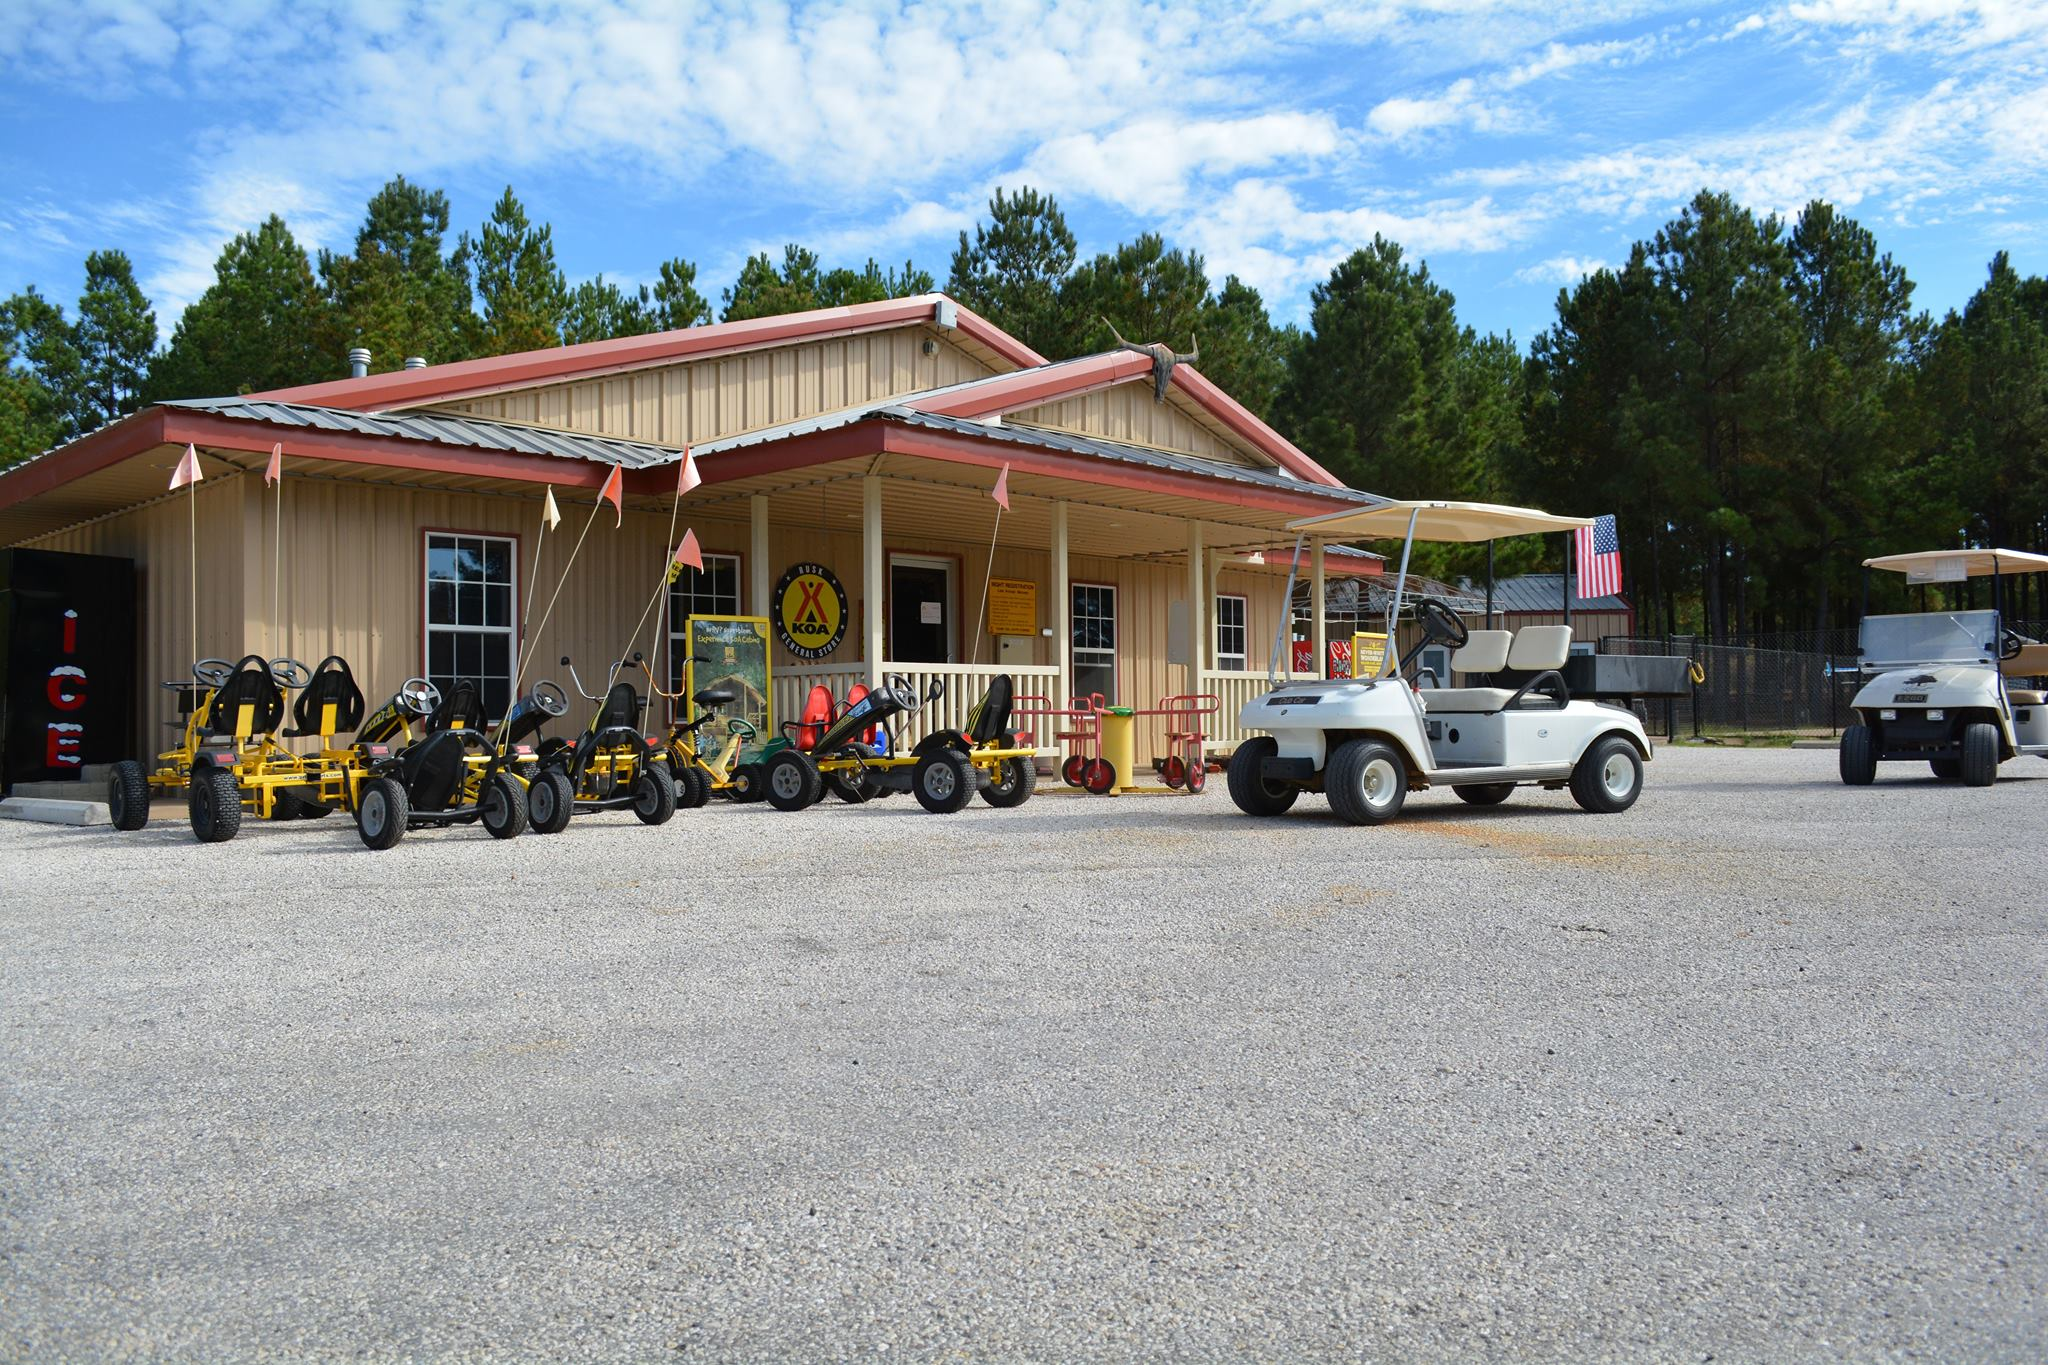 Rusk koa find campgrounds near rusk texas mobilerving for Nearby campgrounds with cabins